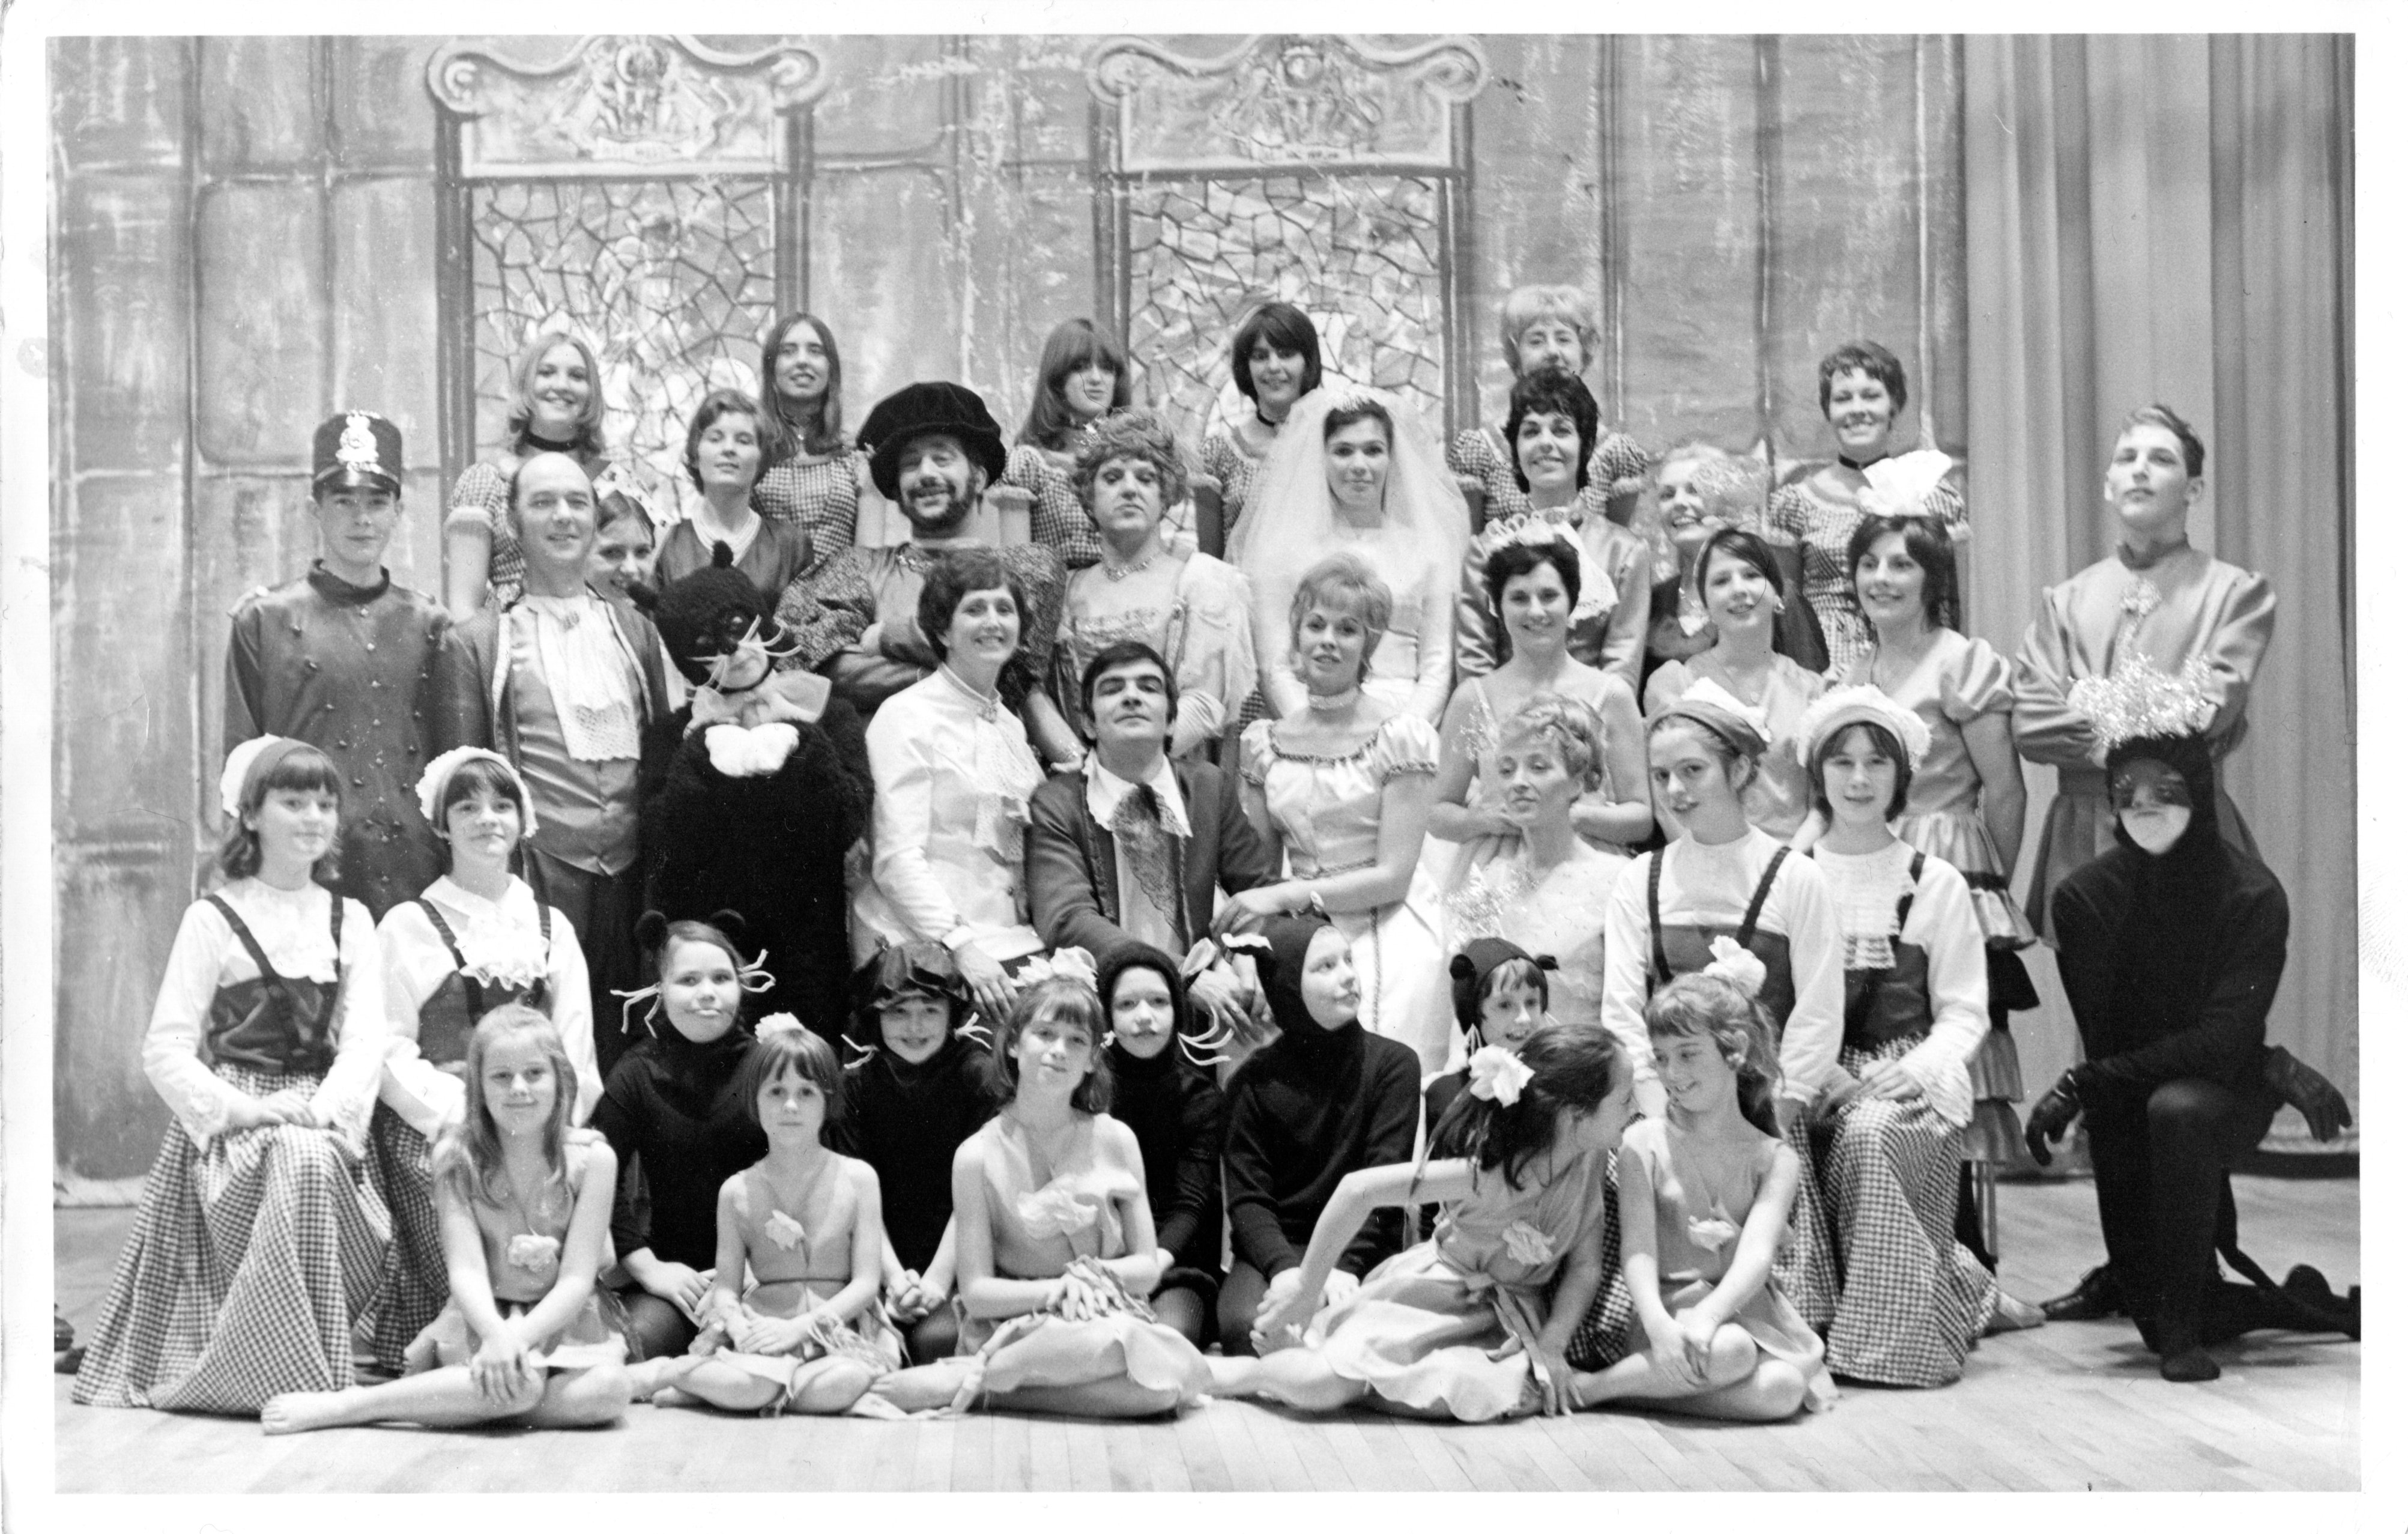 Dick Whittington 1971